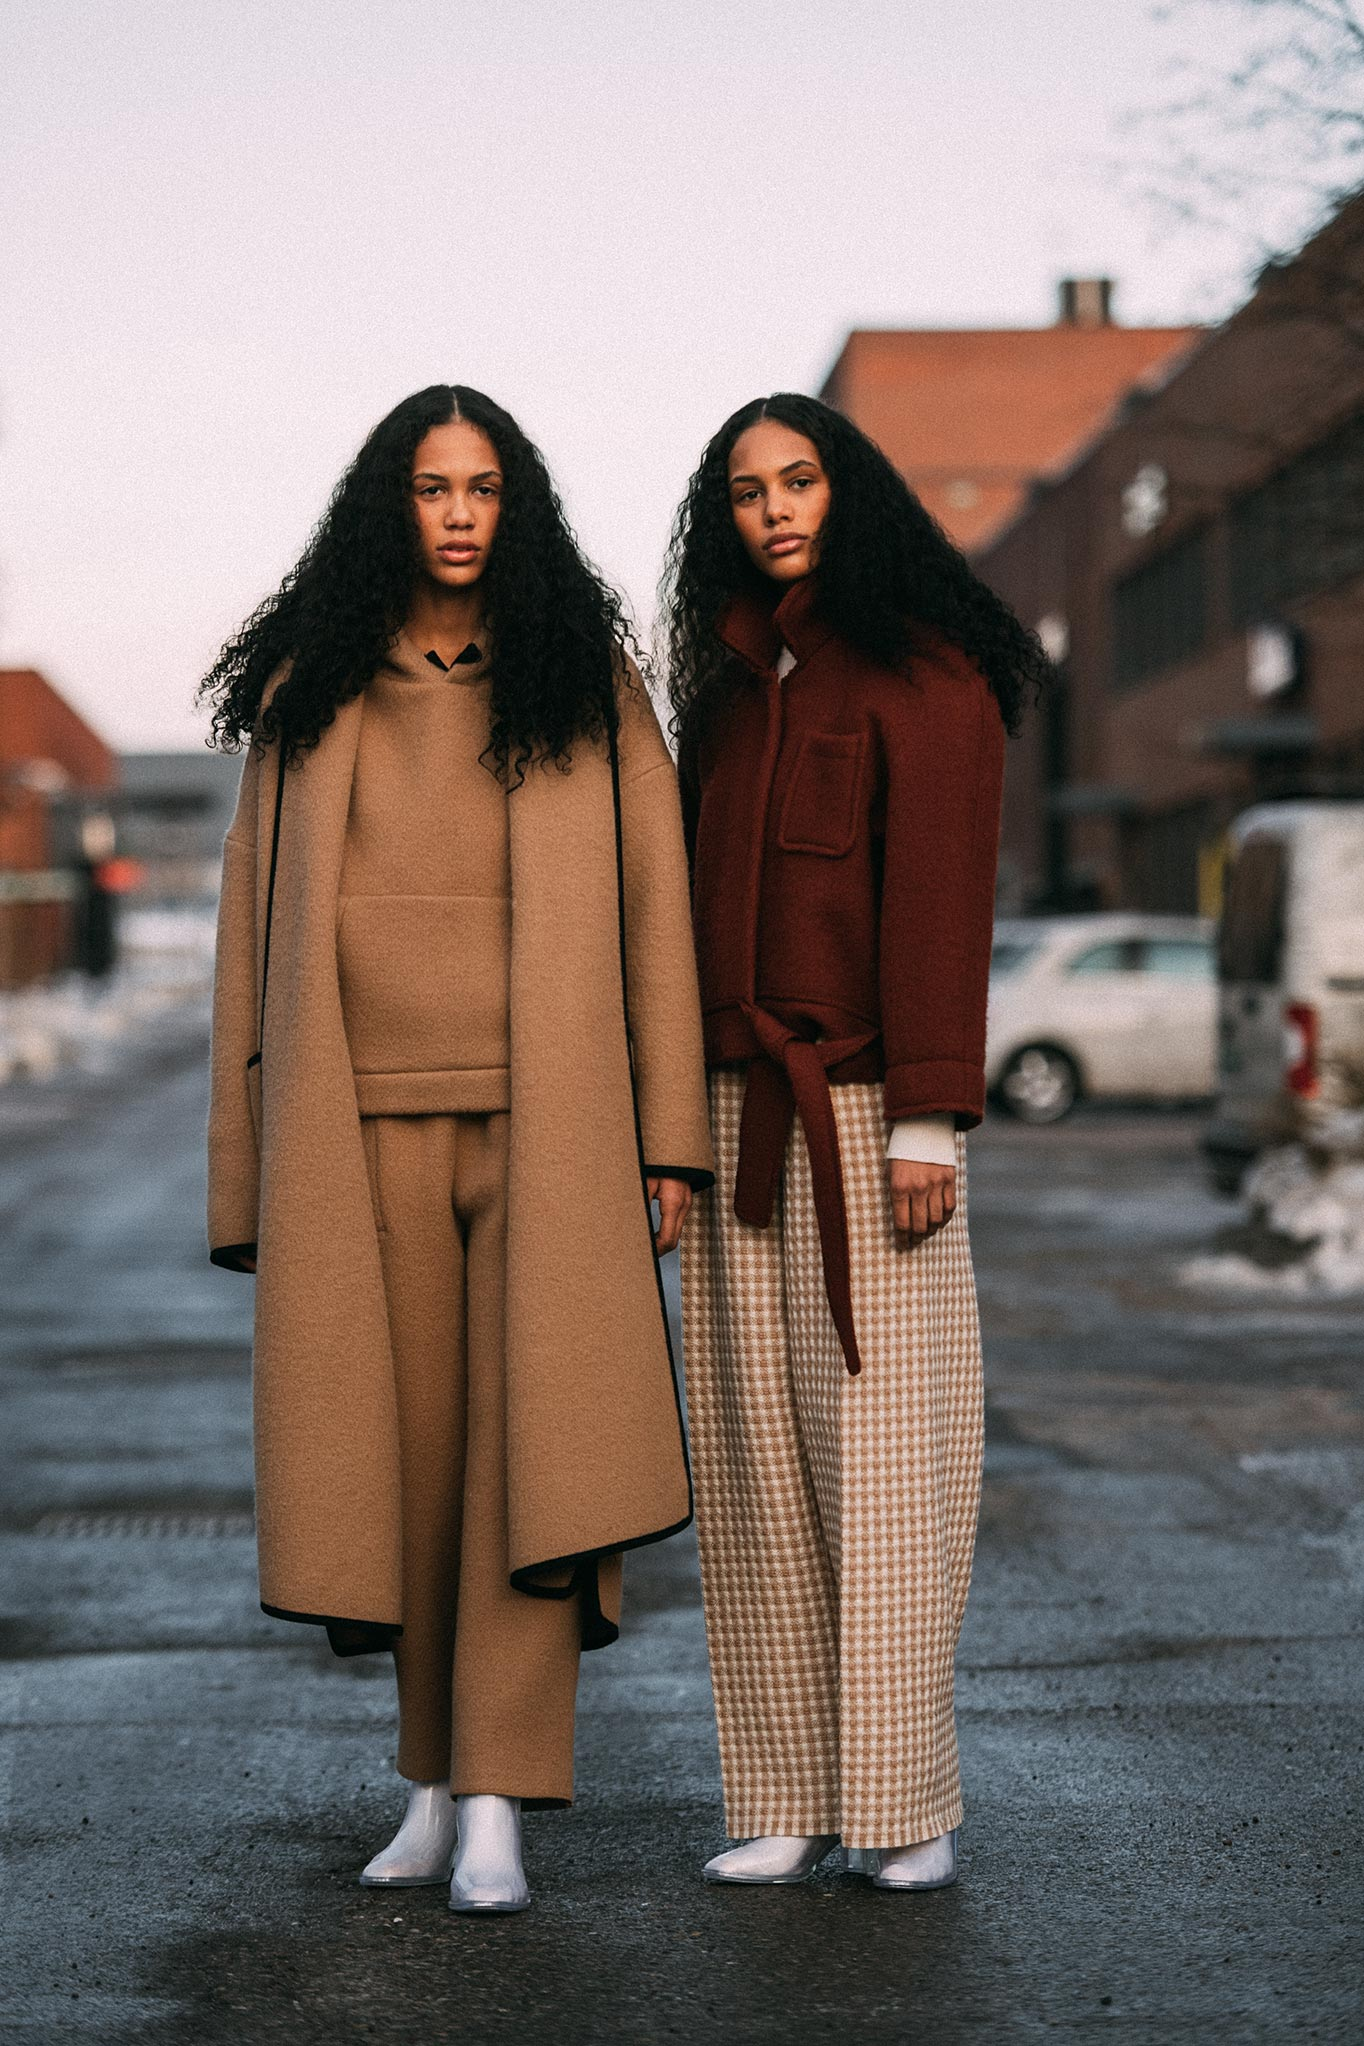 Martine & Gunnhild Chioko Johansen at Oslo Runway Fall/Winter 2018